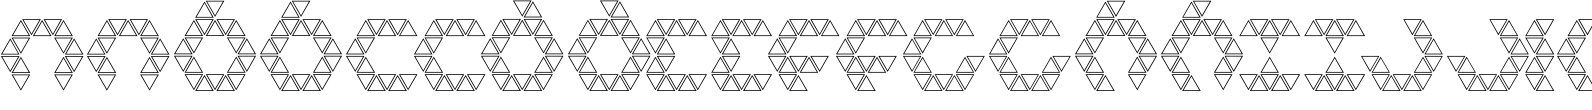 C13 HEX Outline